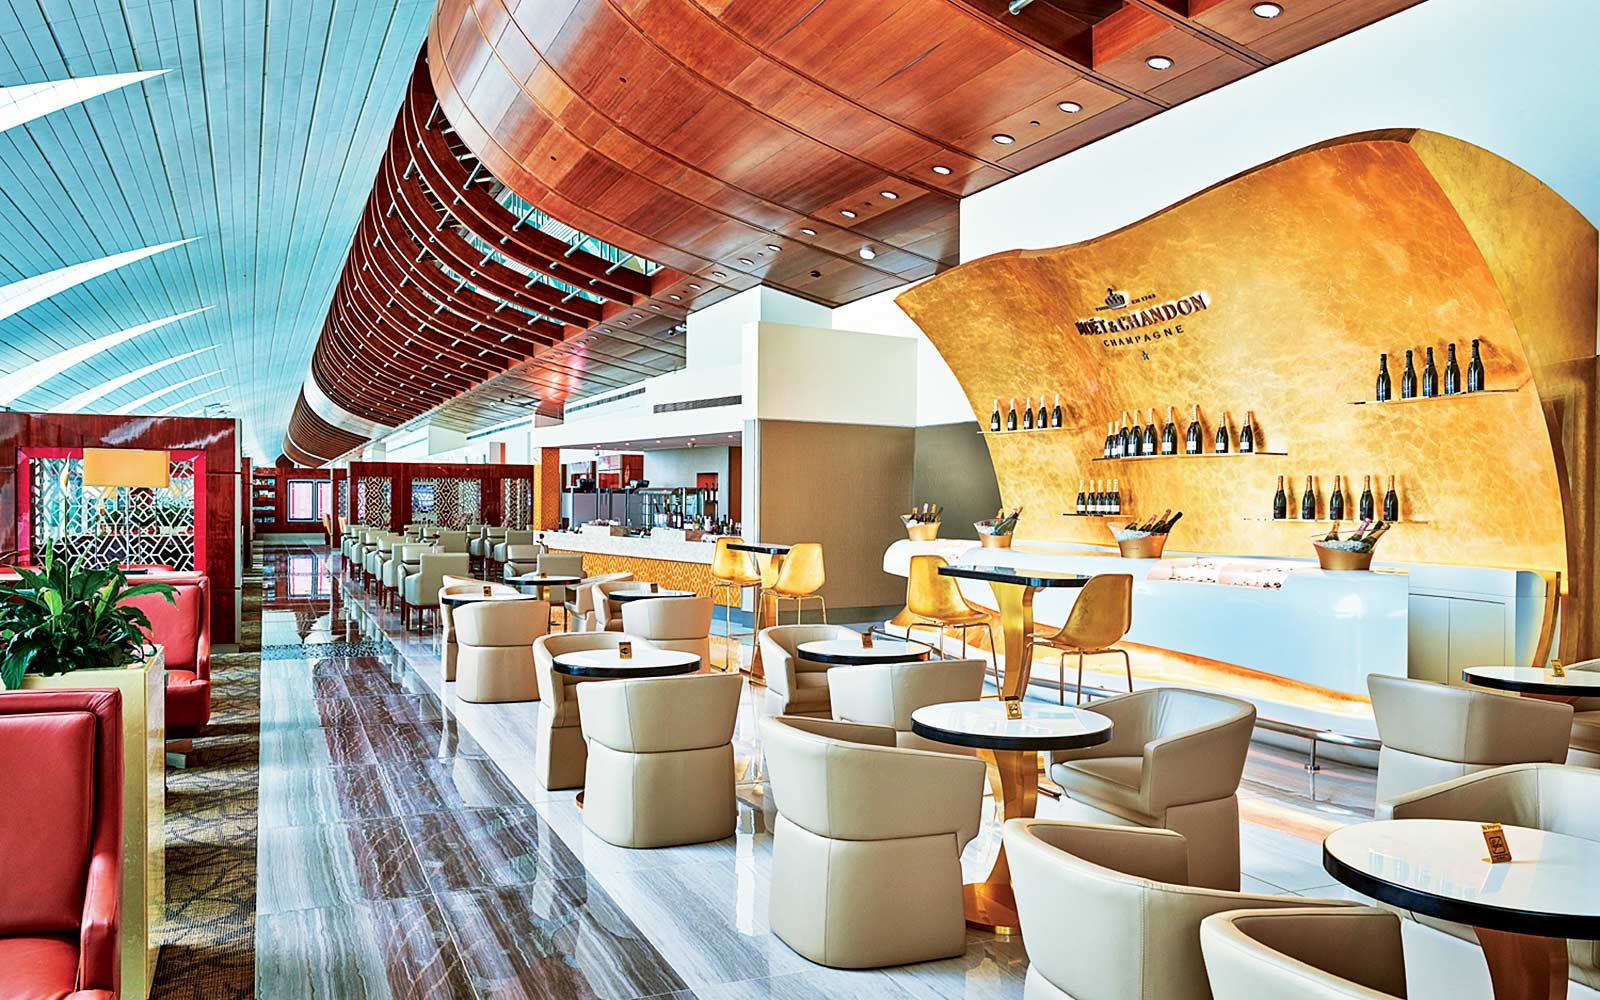 How to Get in Emirates' First Class Lounge Without a First Class Ticket